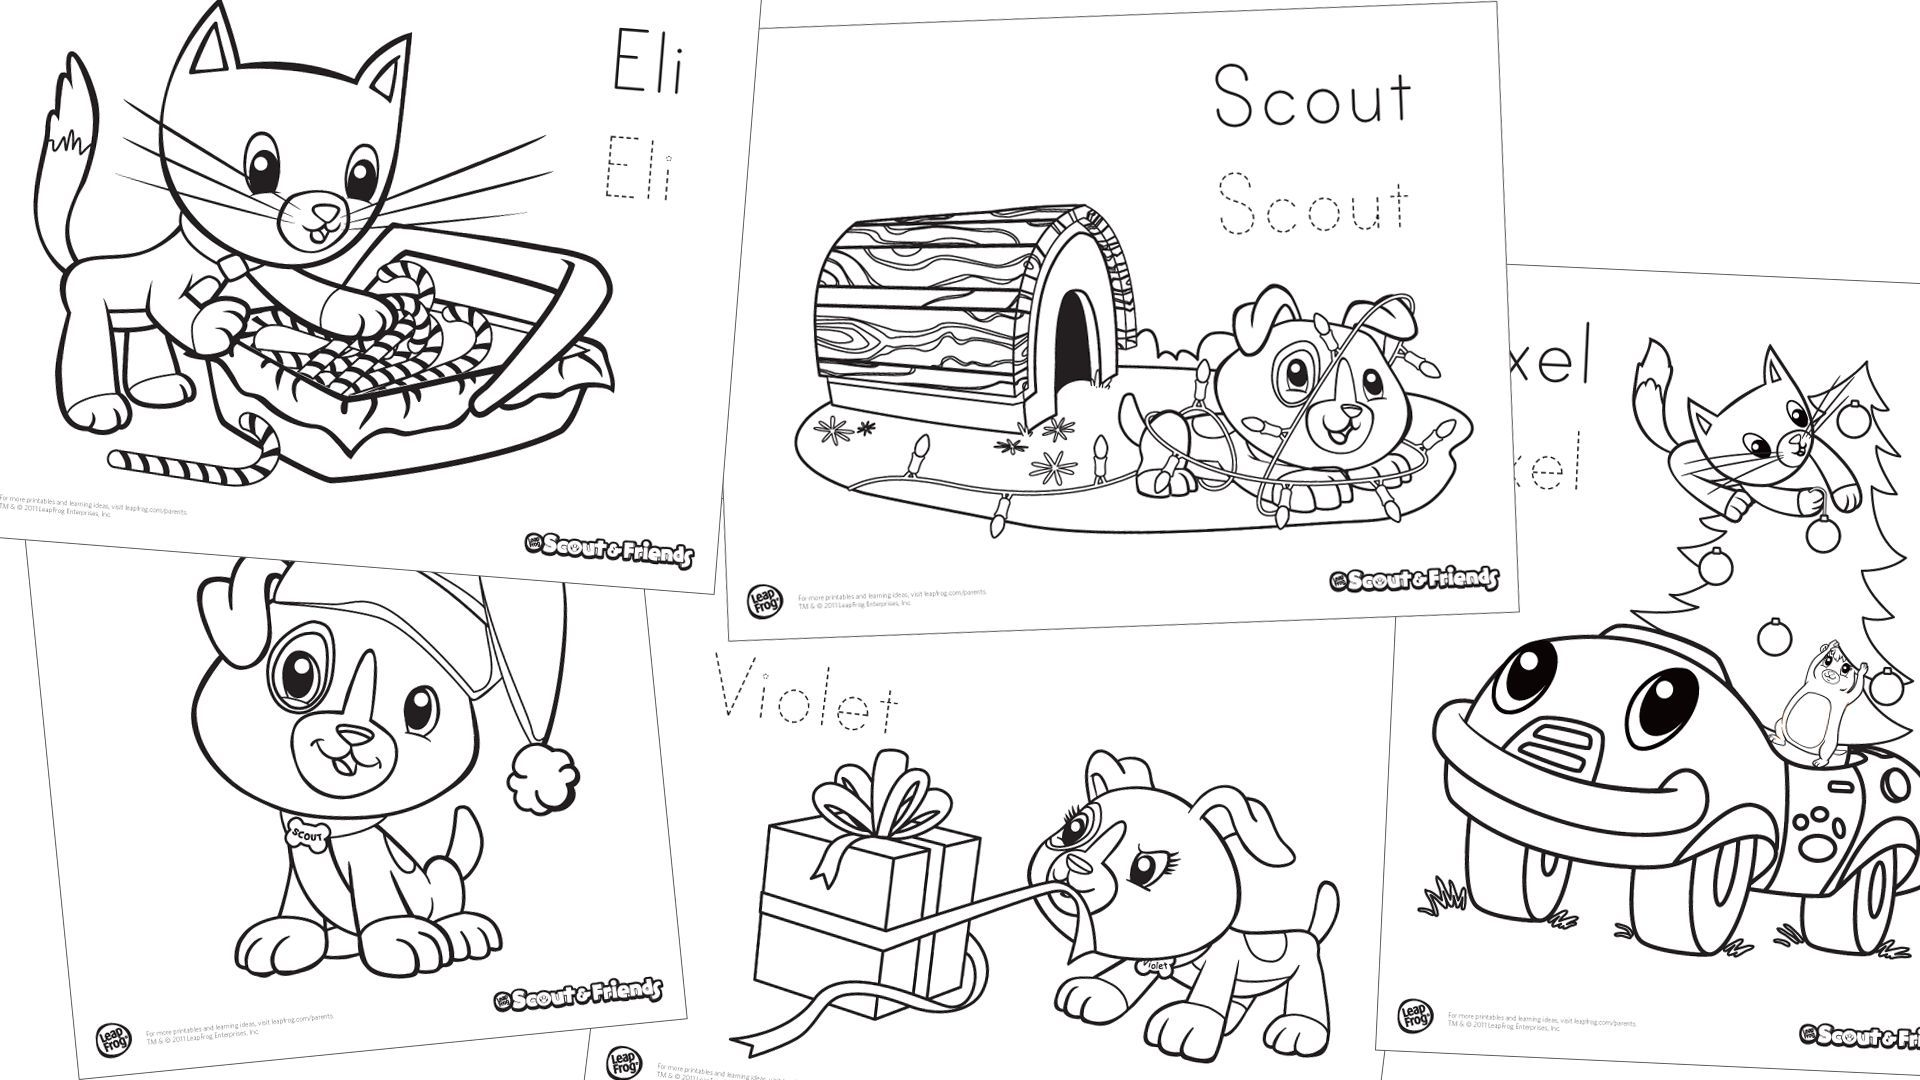 Scout Amp Friends Winter Holiday Coloring Pack Scout Amp Friends Are Spreading Good Cheer In This 6